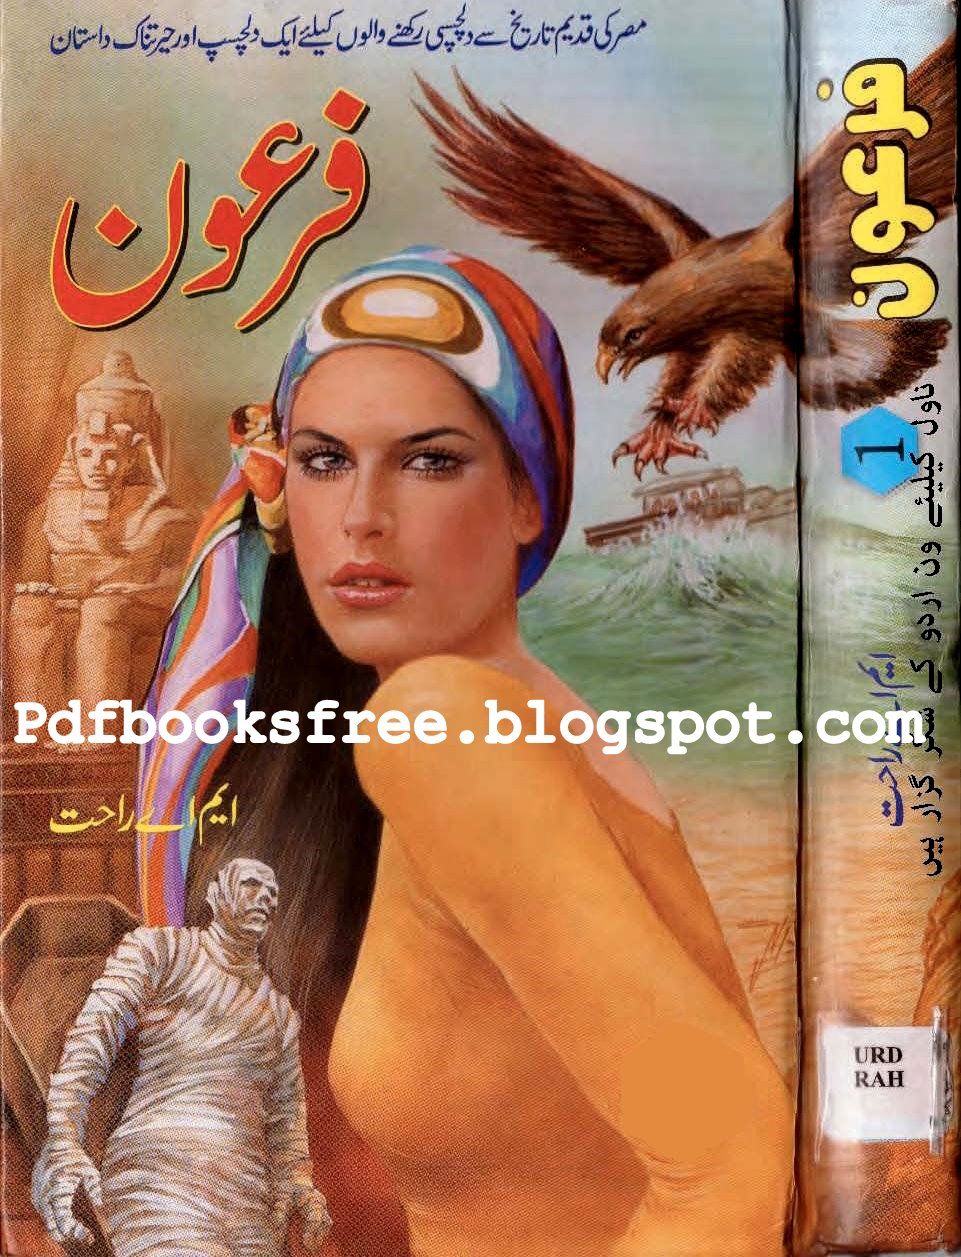 novel is firaon part 1 written by m a rahat an urdu historical novel